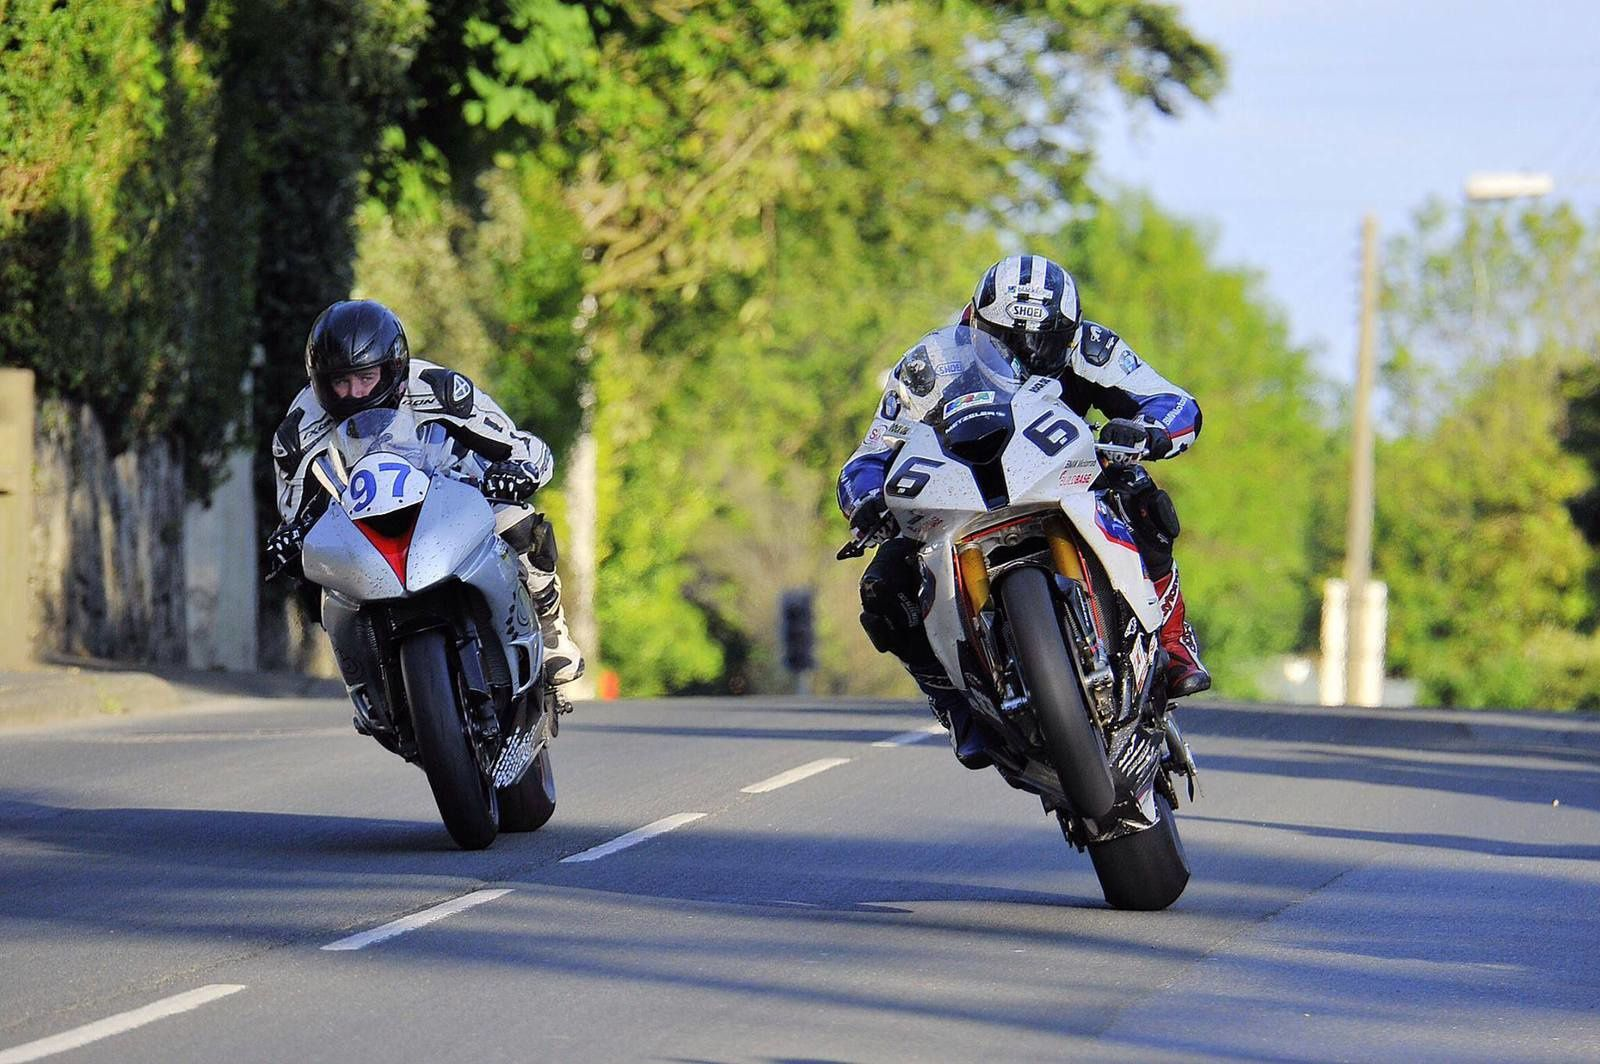 [Road Racing] TT 2014  - Page 2 Ob_aad647_10382240-10203986206760133-87329434224